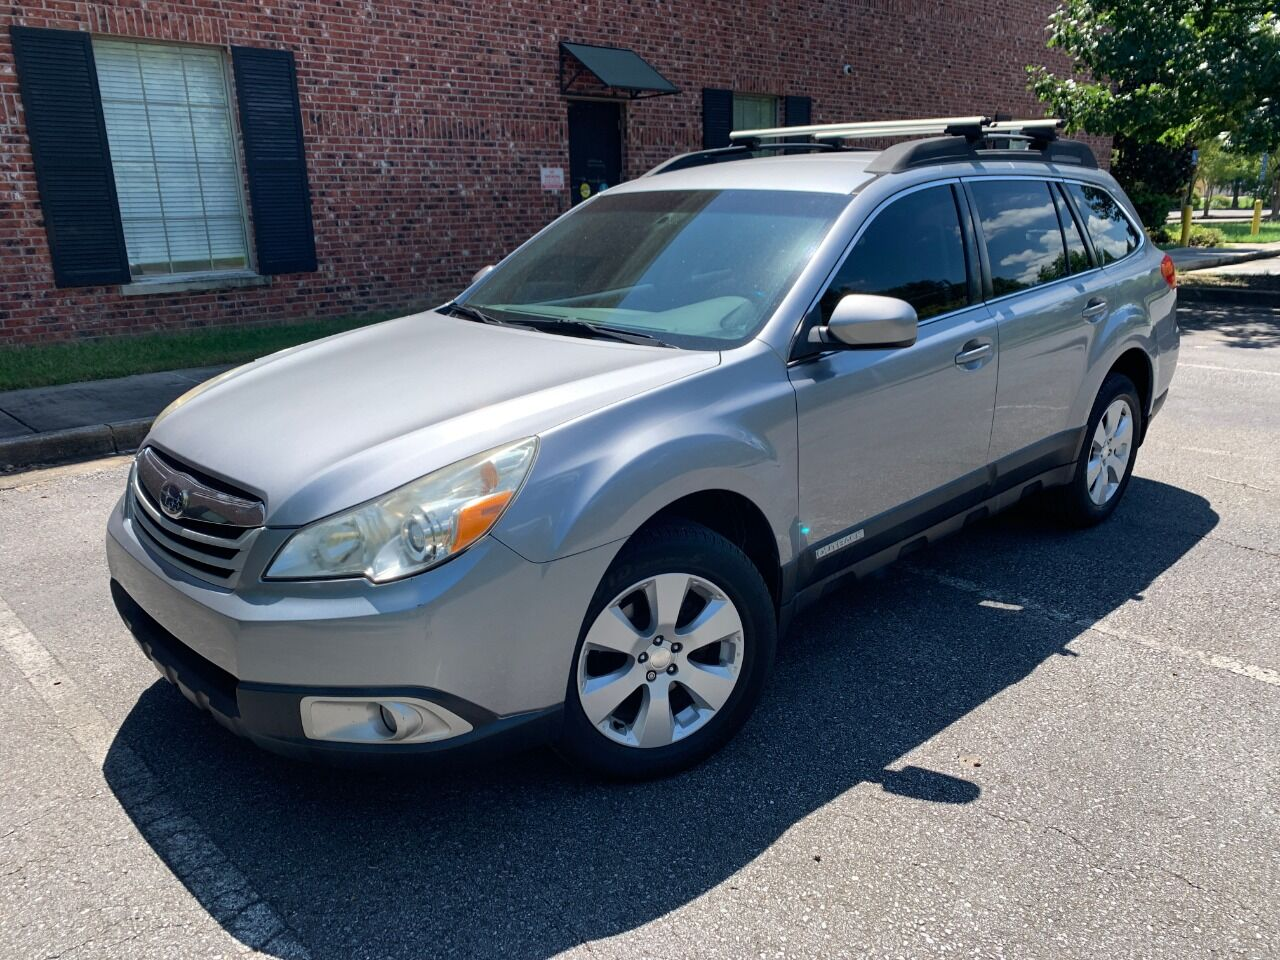 used subaru outback for sale in baton rouge la carsforsale com carsforsale com